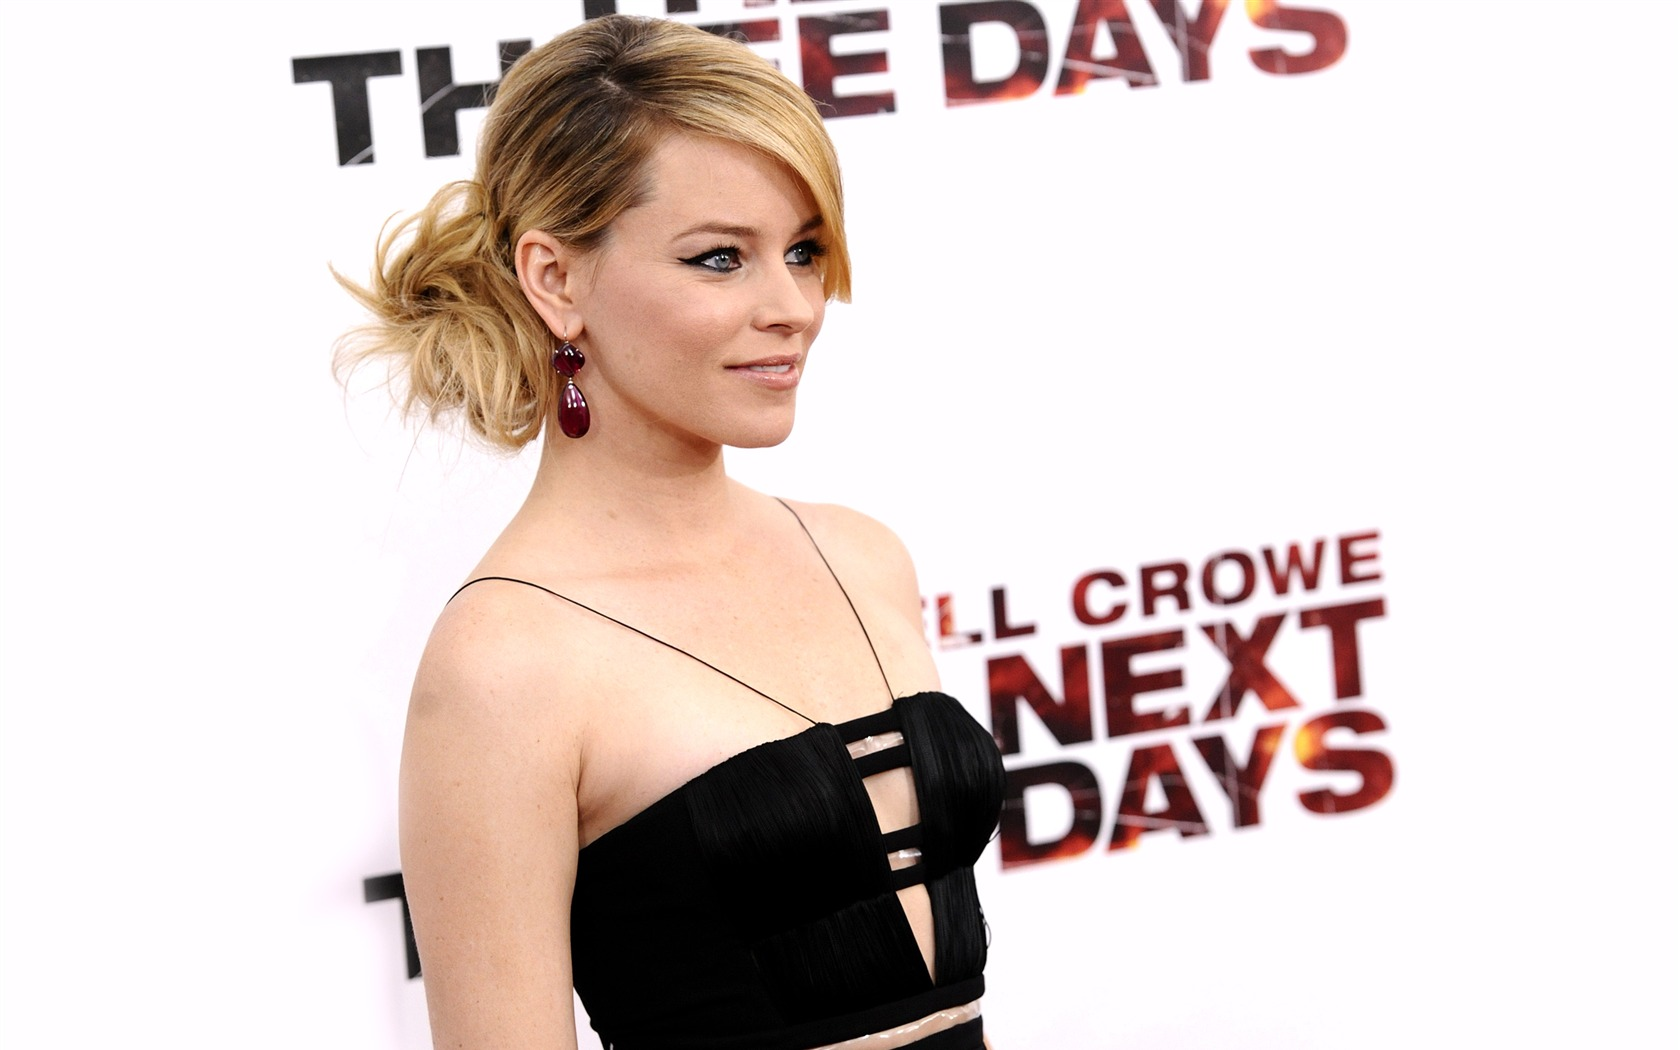 Elizabeth Banks #002 - 1680x1050 Wallpapers Pictures Photos Images